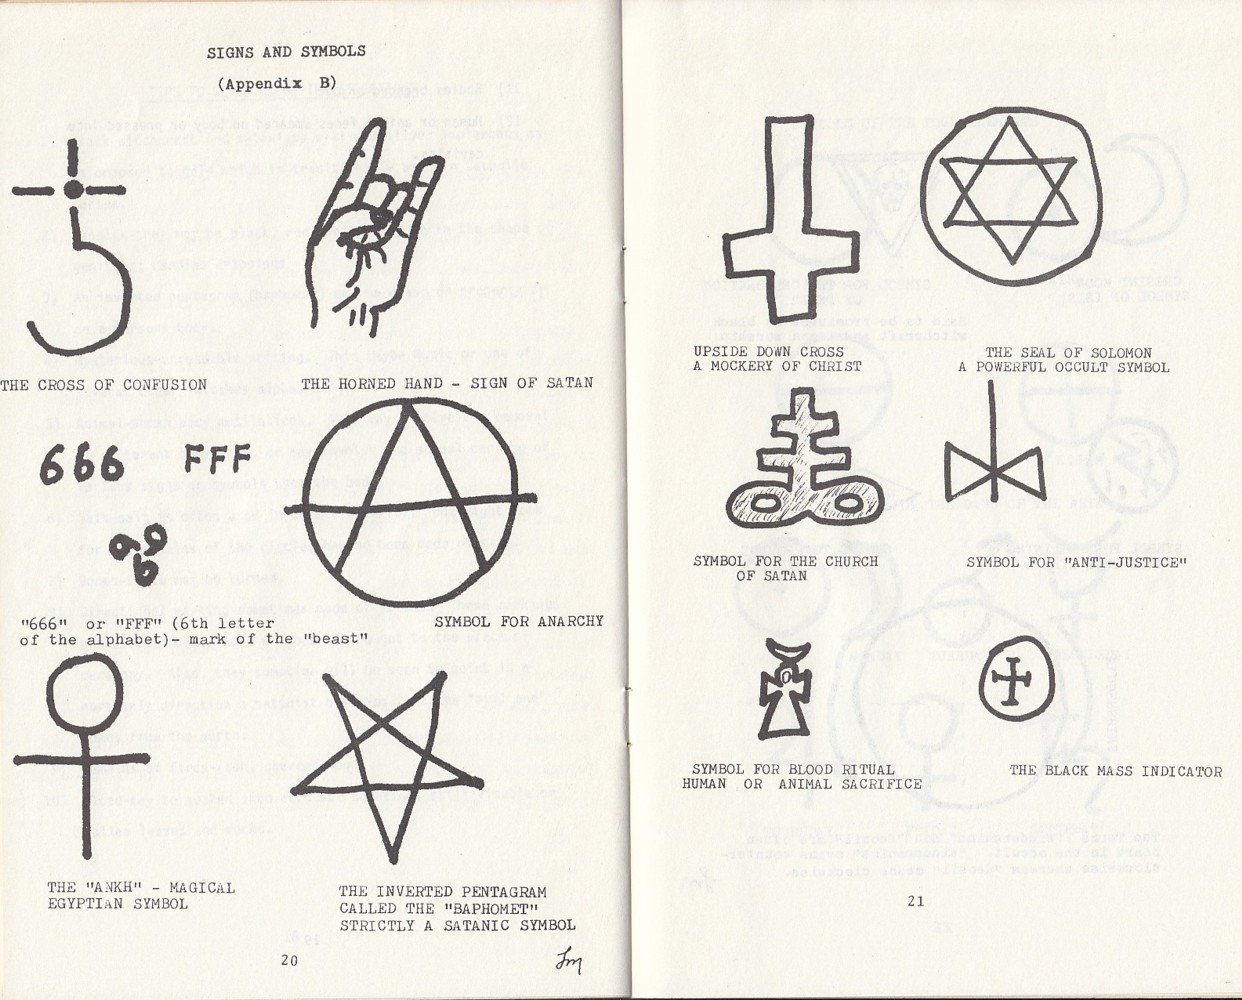 Blood ritual symbol images symbol and sign ideas a brief overview of the occult leo e mueller amazon books buycottarizona biocorpaavc